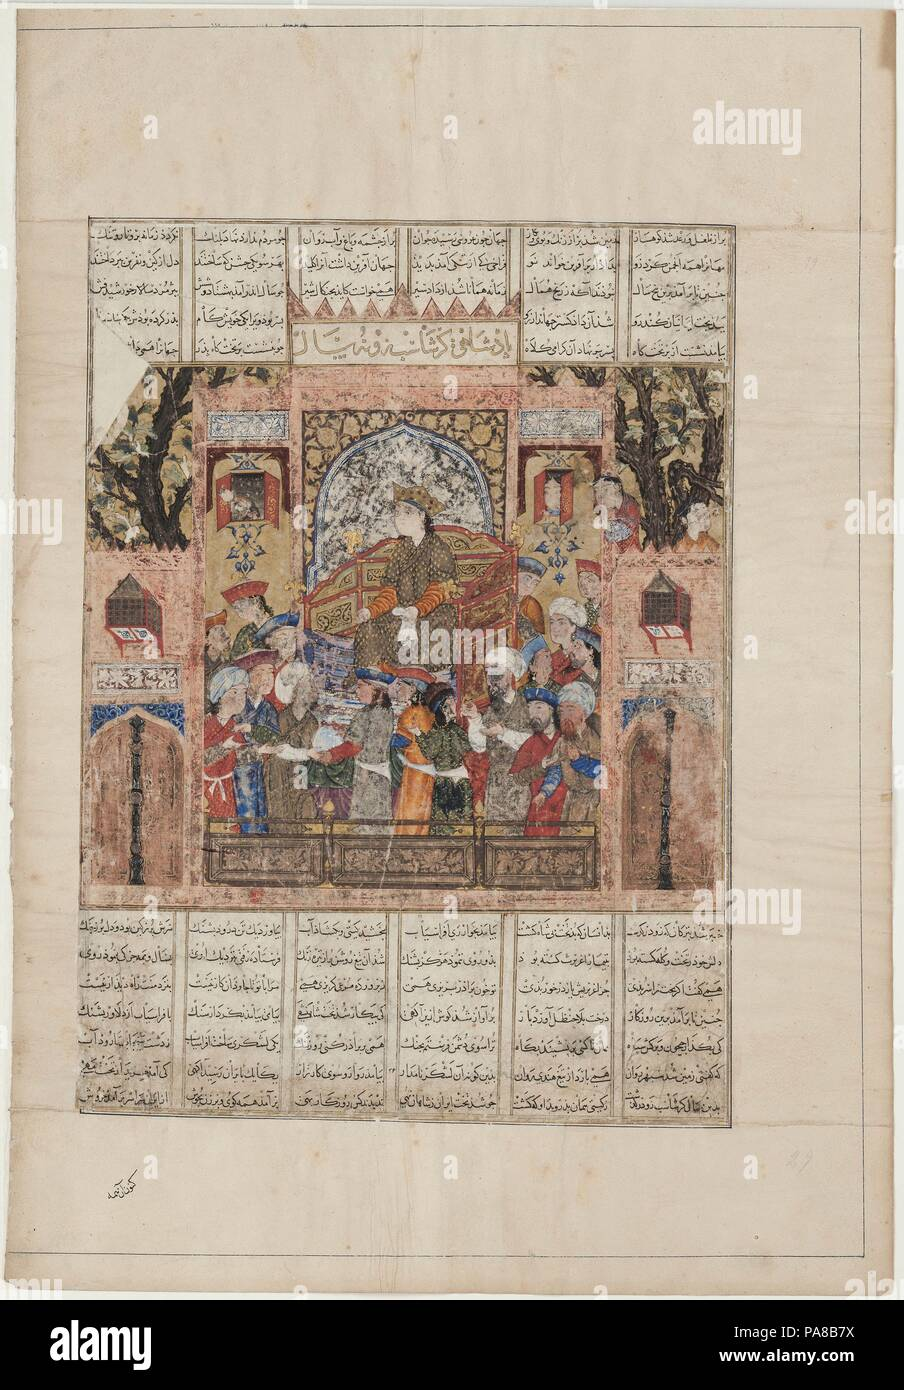 Garshasp on his throne. From the Shahnama (Book of Kings). Museum: Musée d'art et d'histoire, Genf. - Stock Image